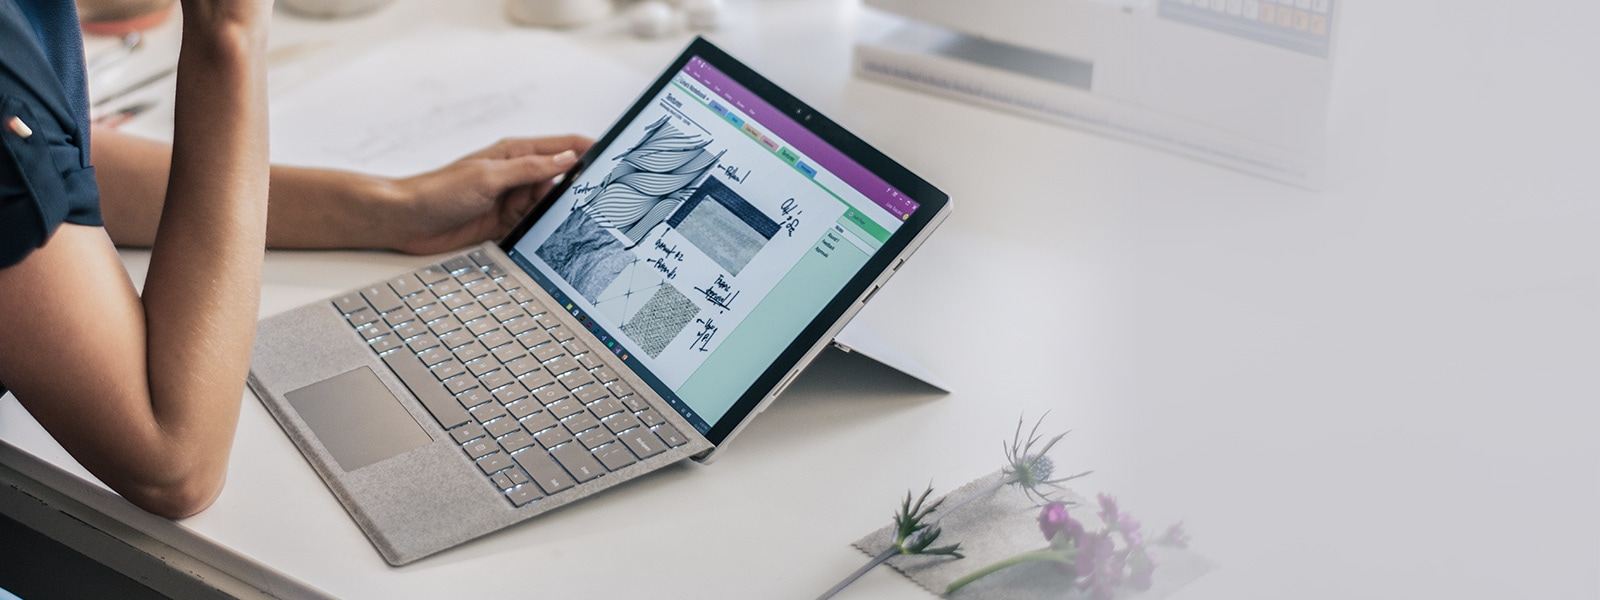 surface payment solutions microsoft store australia